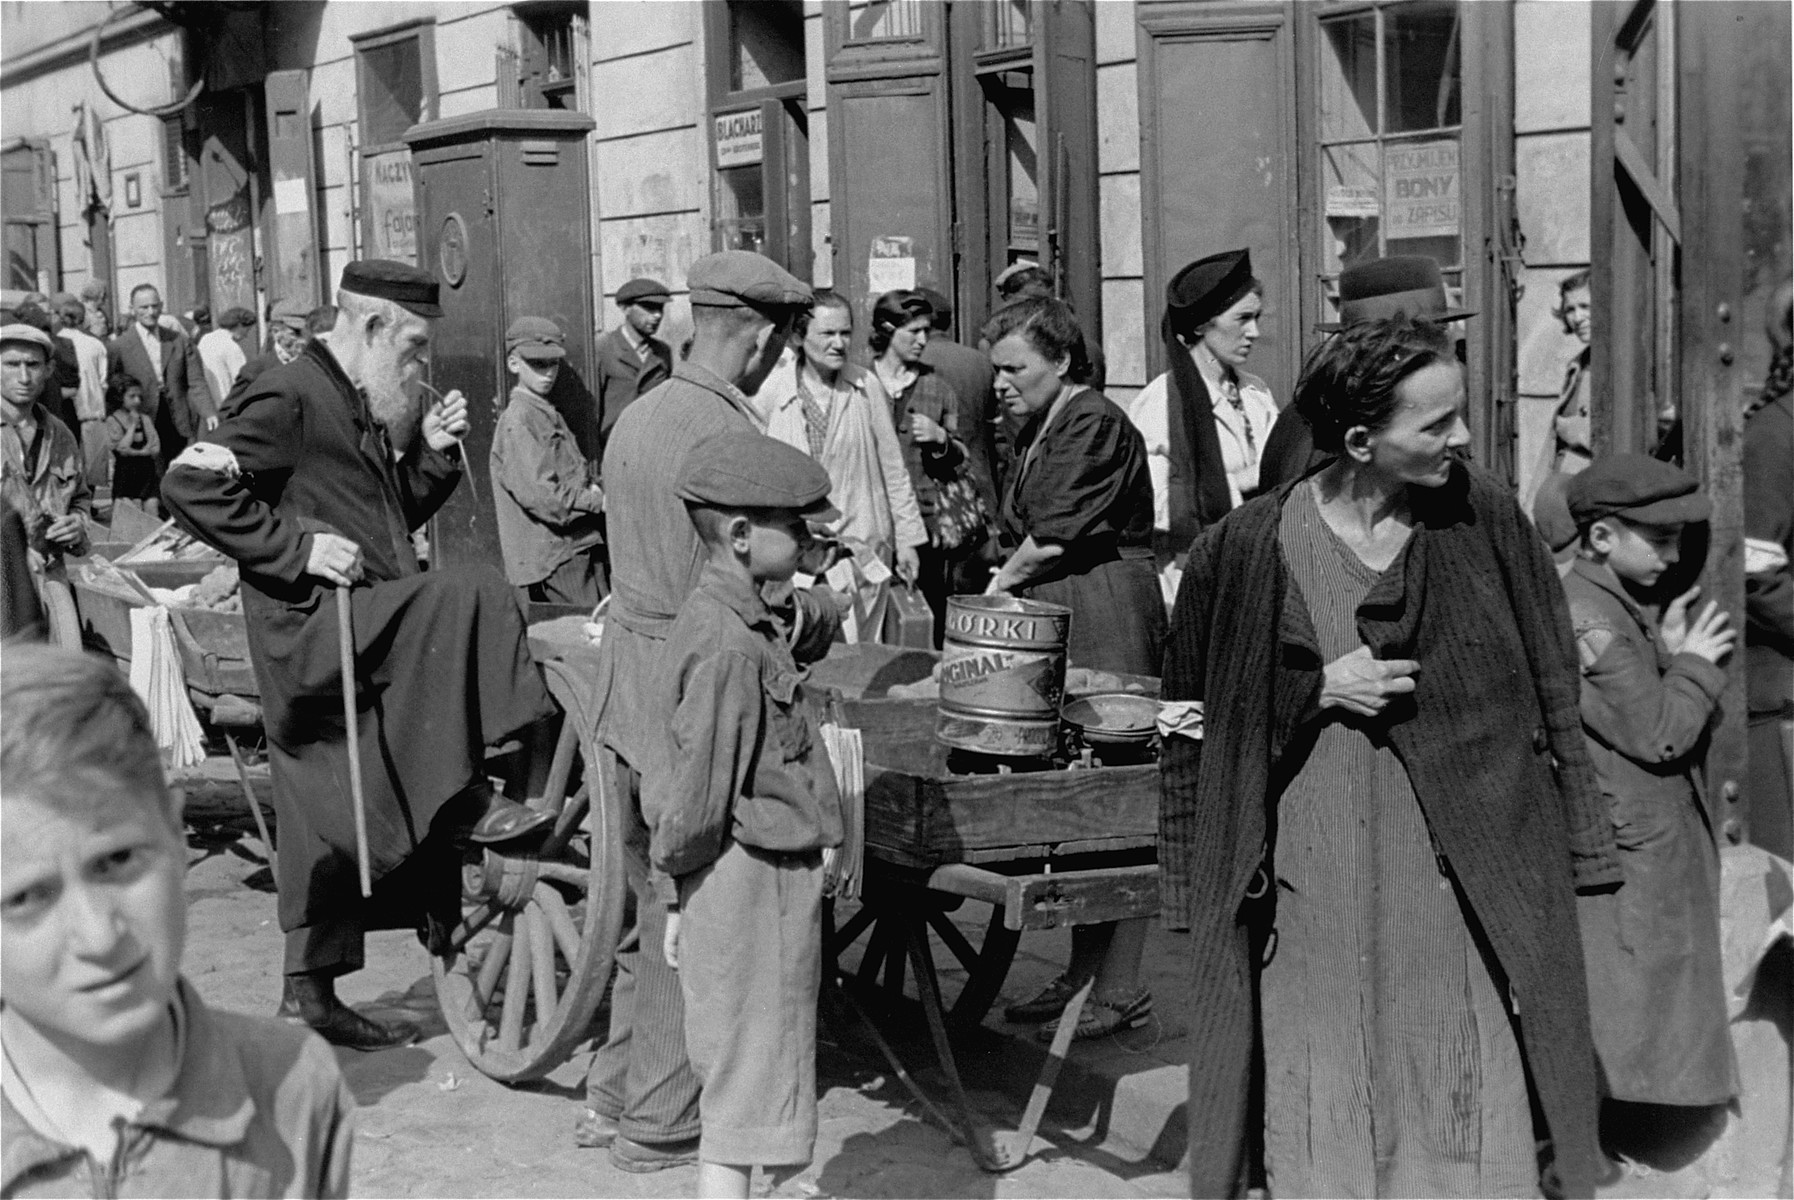 Vendors and buyers in an open air market in the Warsaw ghetto.